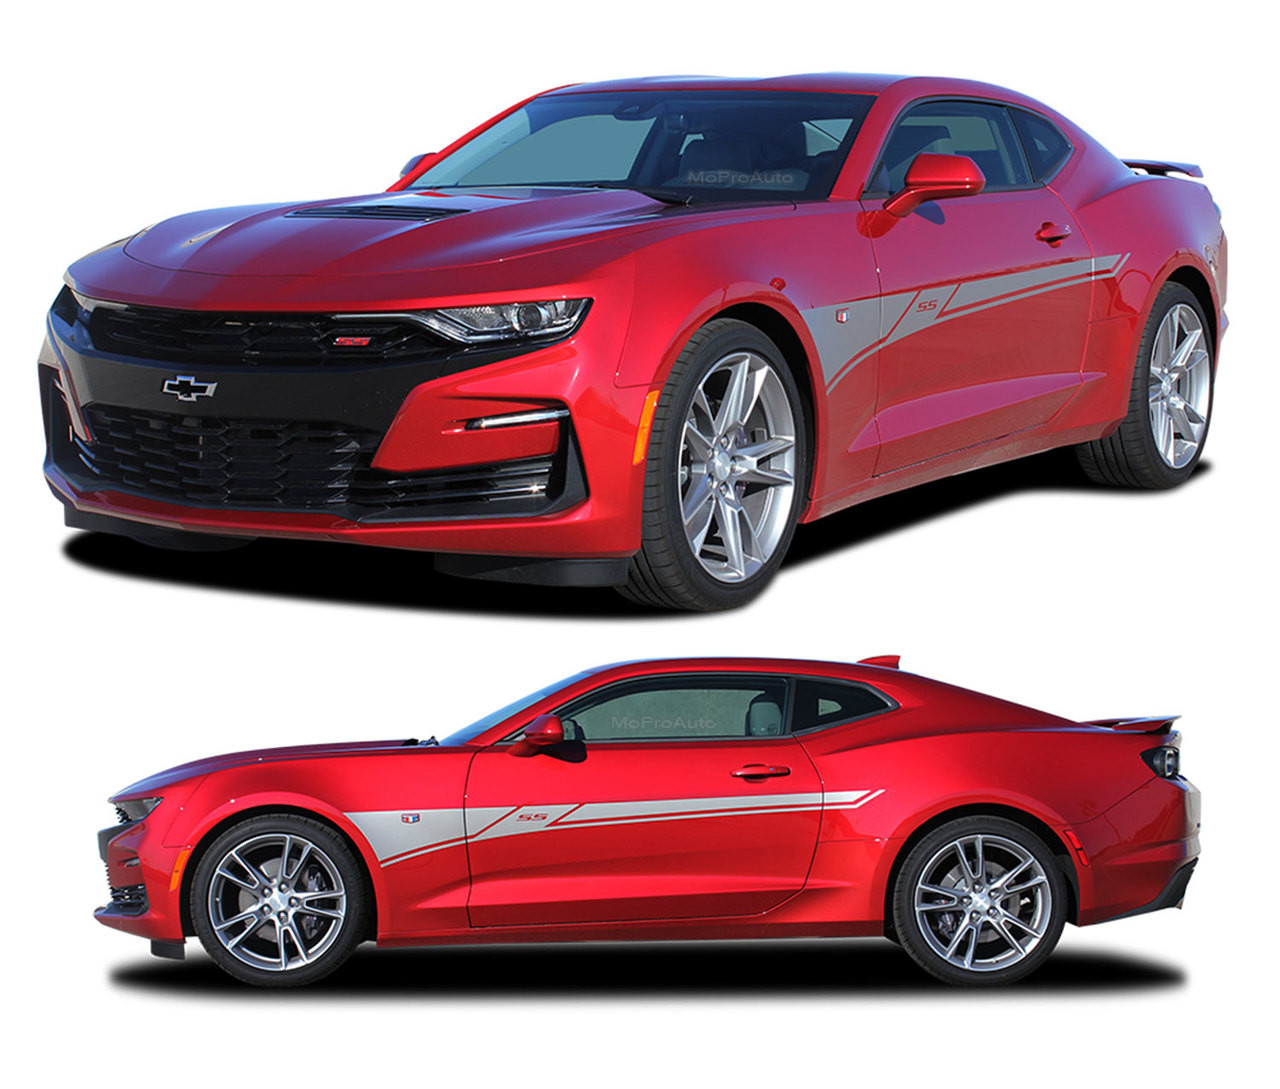 bd6f0b026ede8a 2019 2020 Camaro Door Decal BACKLASH   Chevy Camaro Side Body Stripes  Decals Vinyl Graphics Kit (M-PDS-6001)